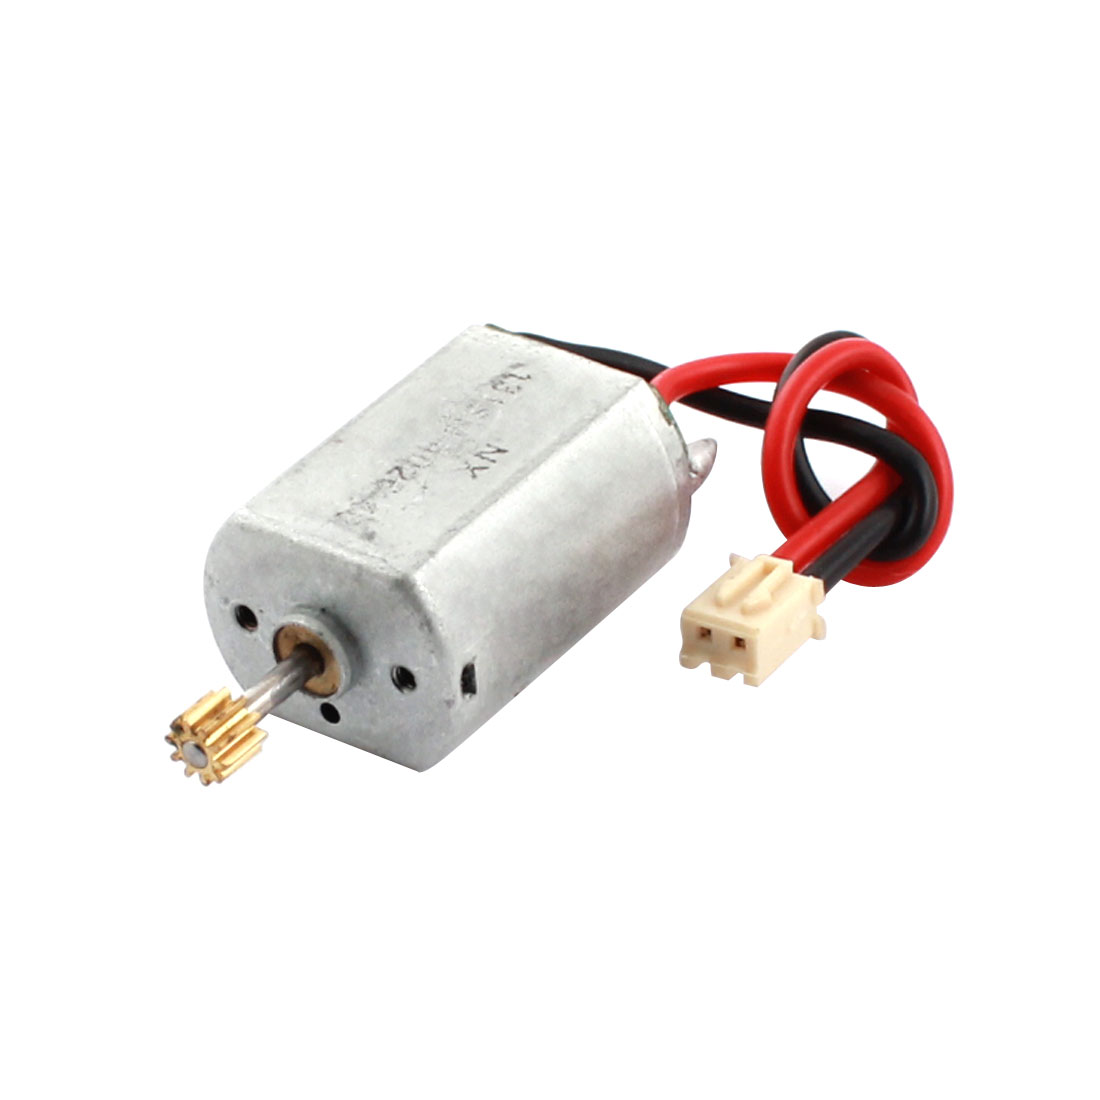 Silver Tone JST Plug 3.7V 45000RPM Back Motor for 8088-42/43 RC Helicopter